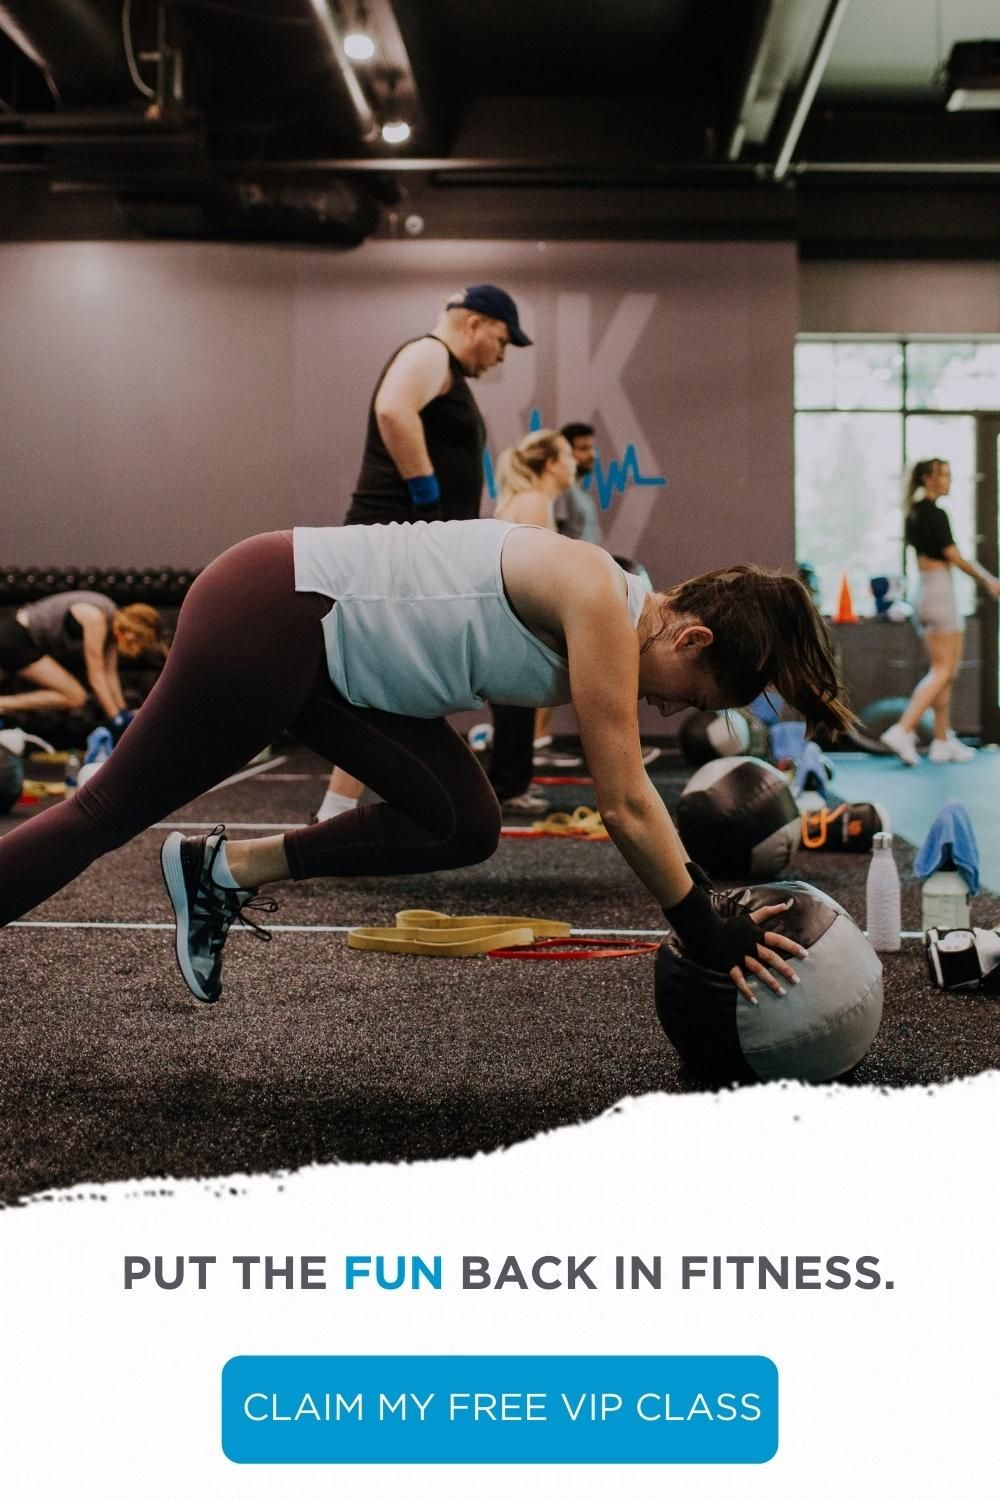 Try Your Free Vip Class Experience Today Video In 2021 Workout Routine Fitness Workout